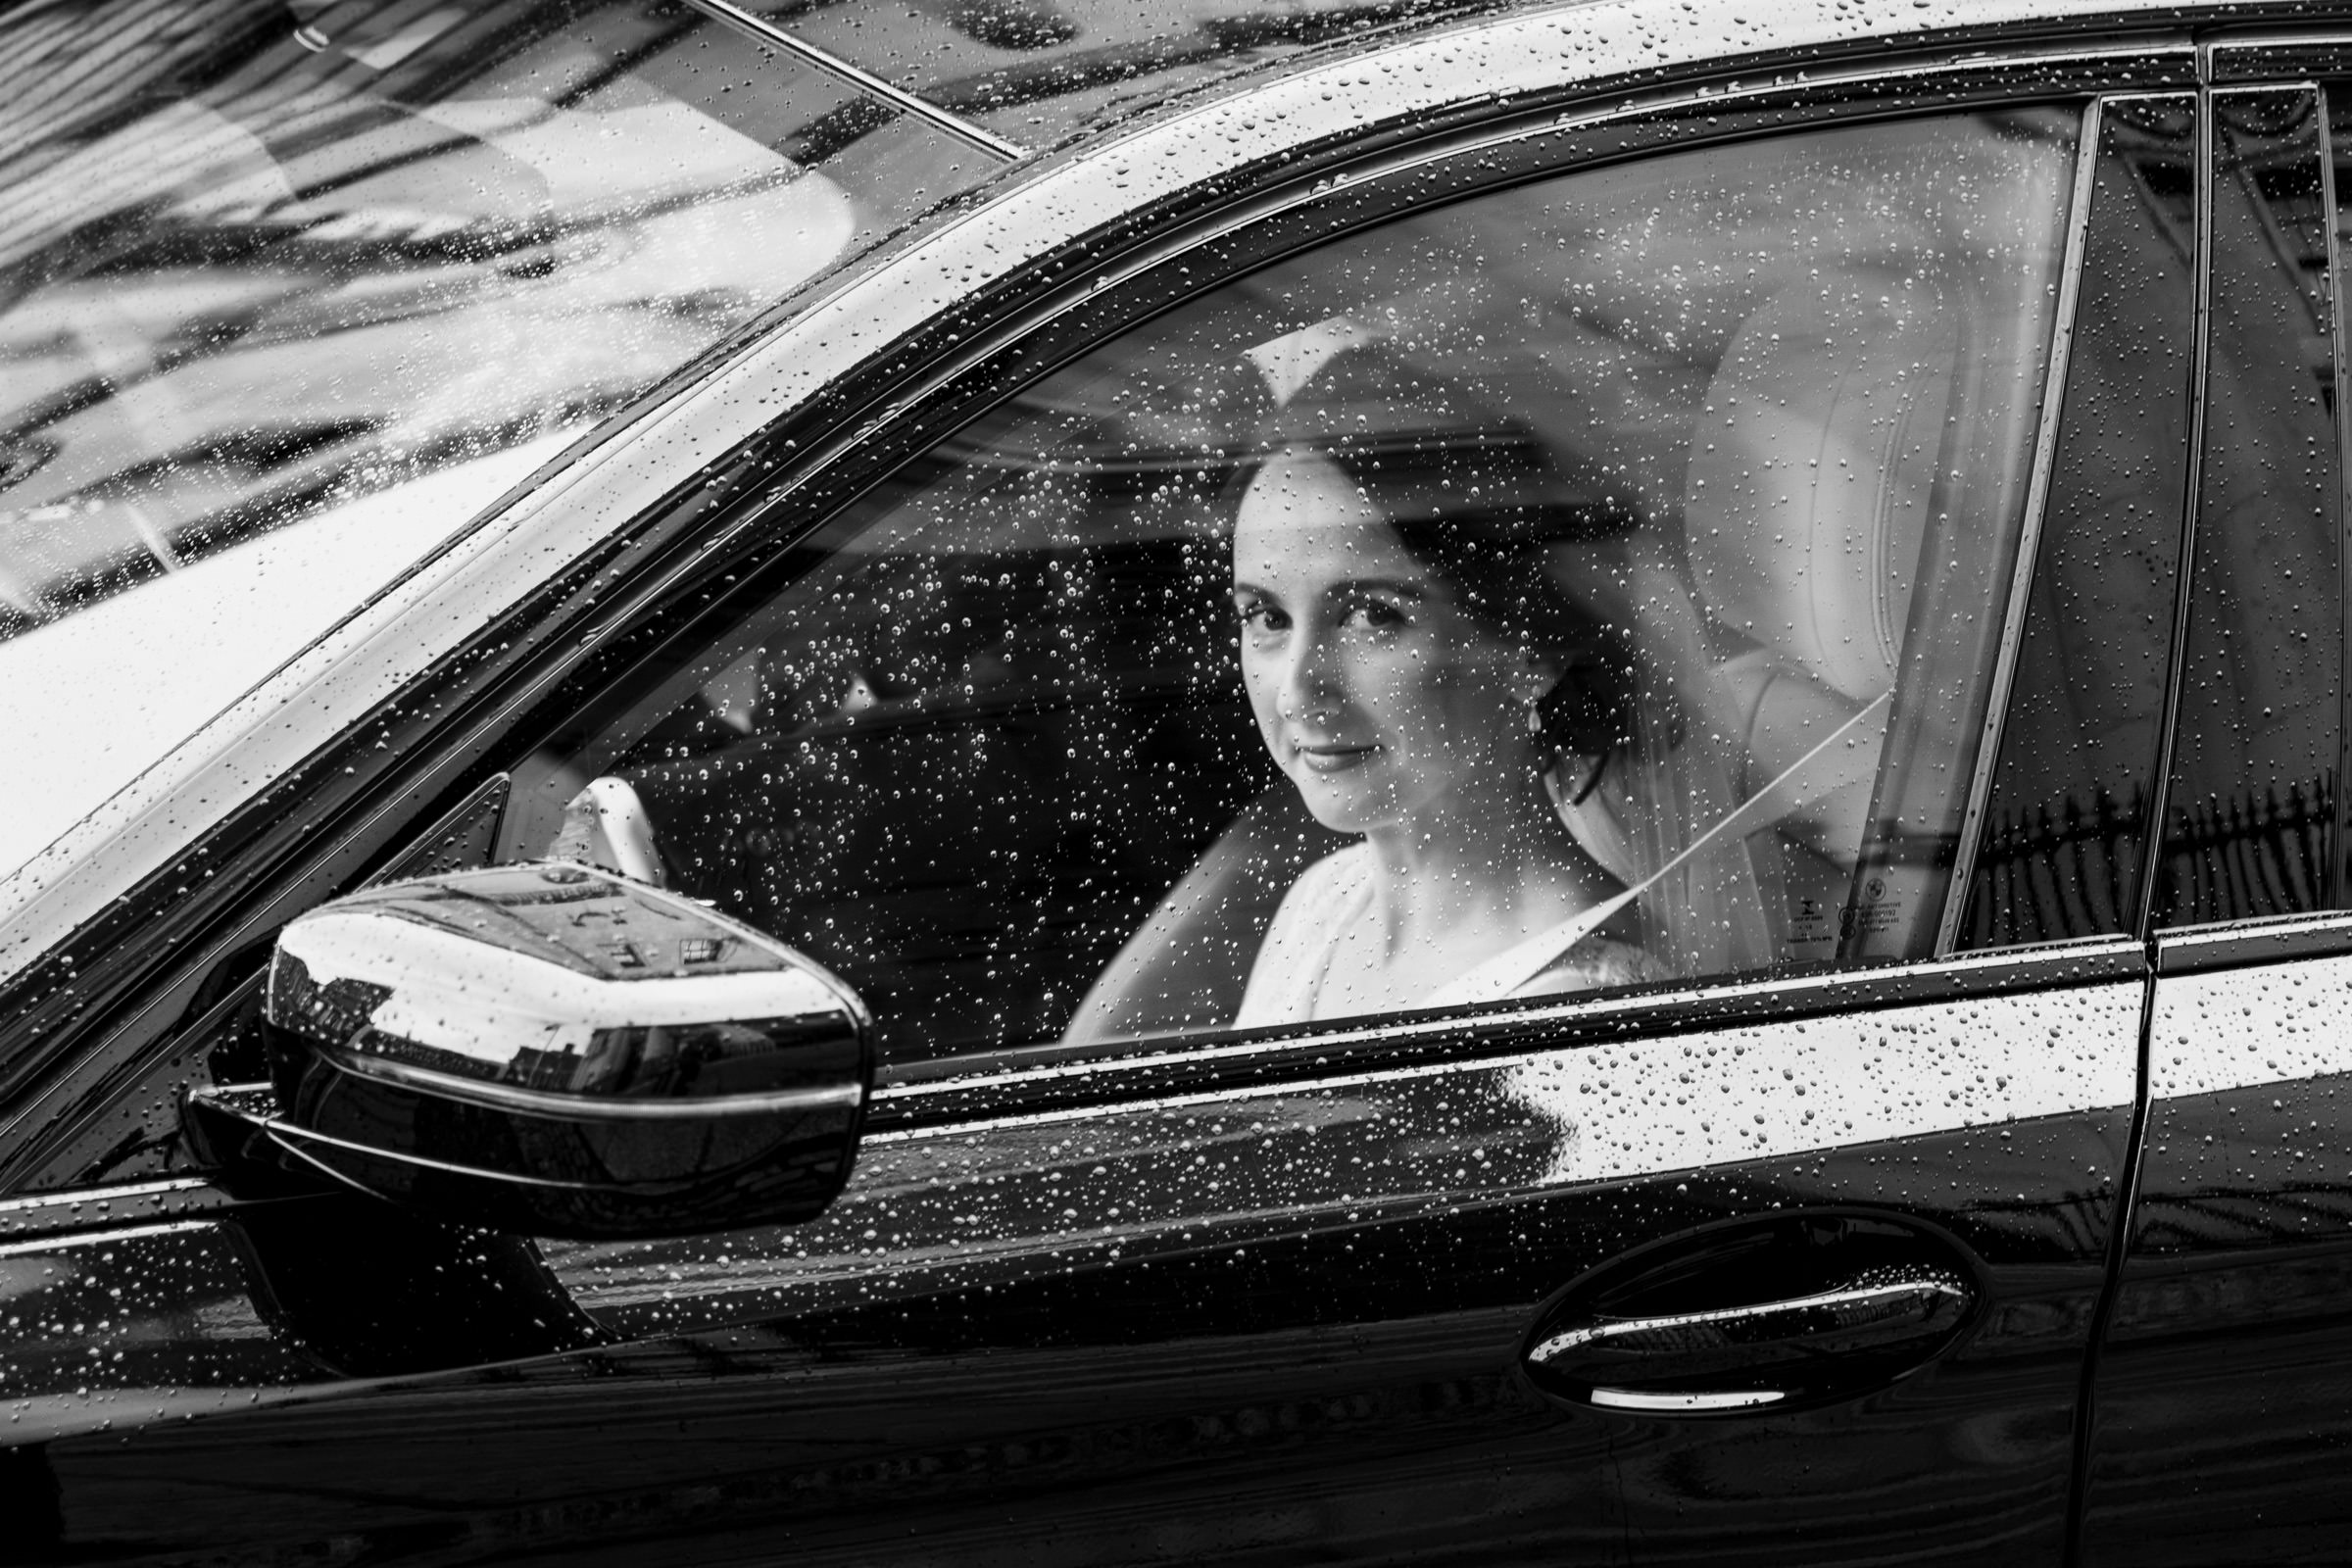 Bride in car seen through rain spattered window - photo by The Portrait Rooms